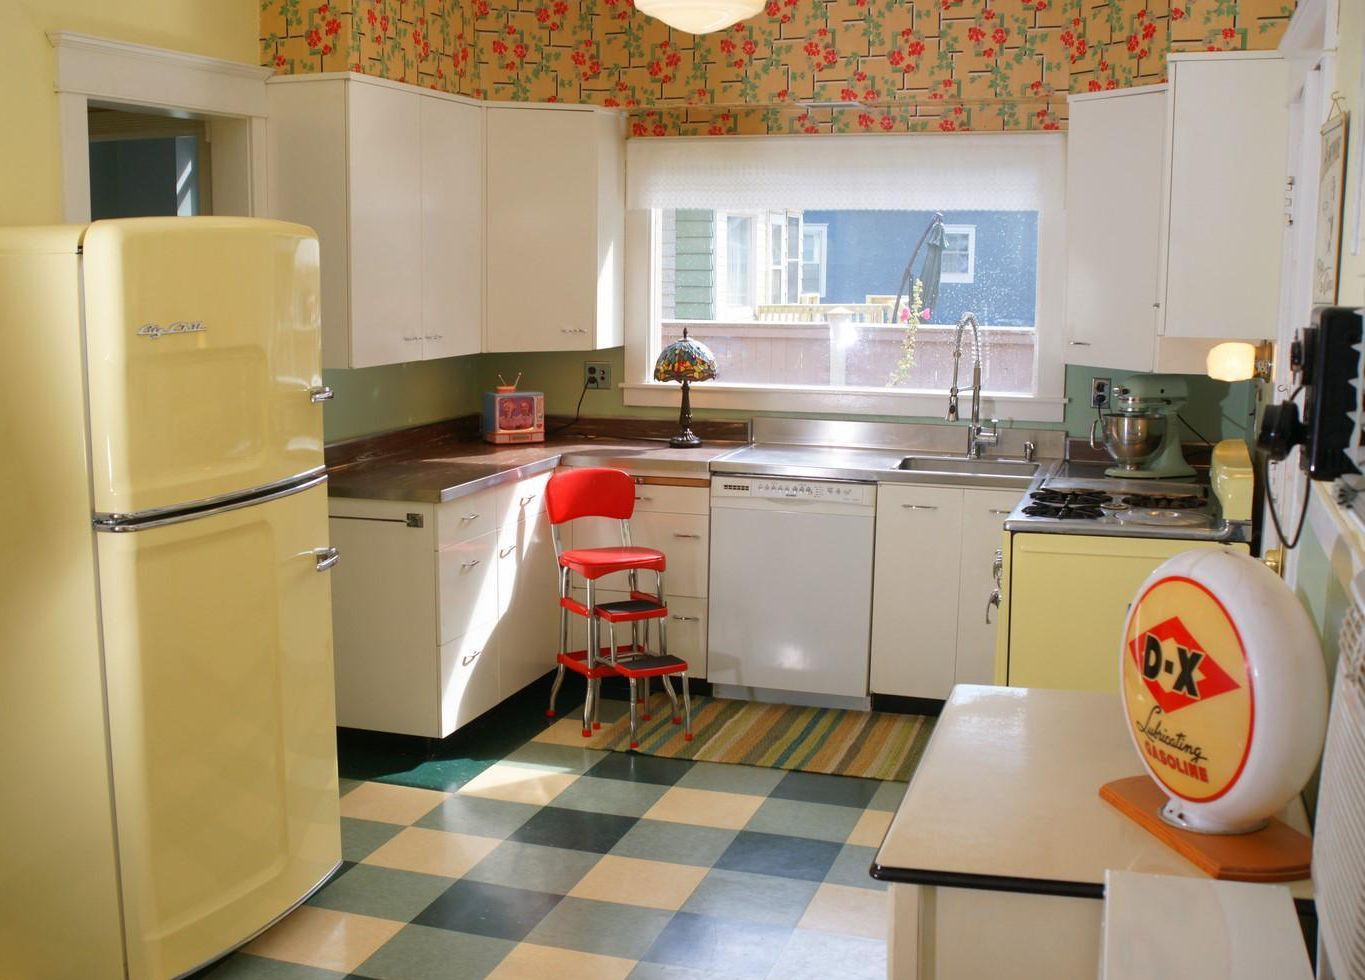 Retro Kitchen Flooring Vintage Kitchen With Big Chill Refrigerator In Buttercup Yellow